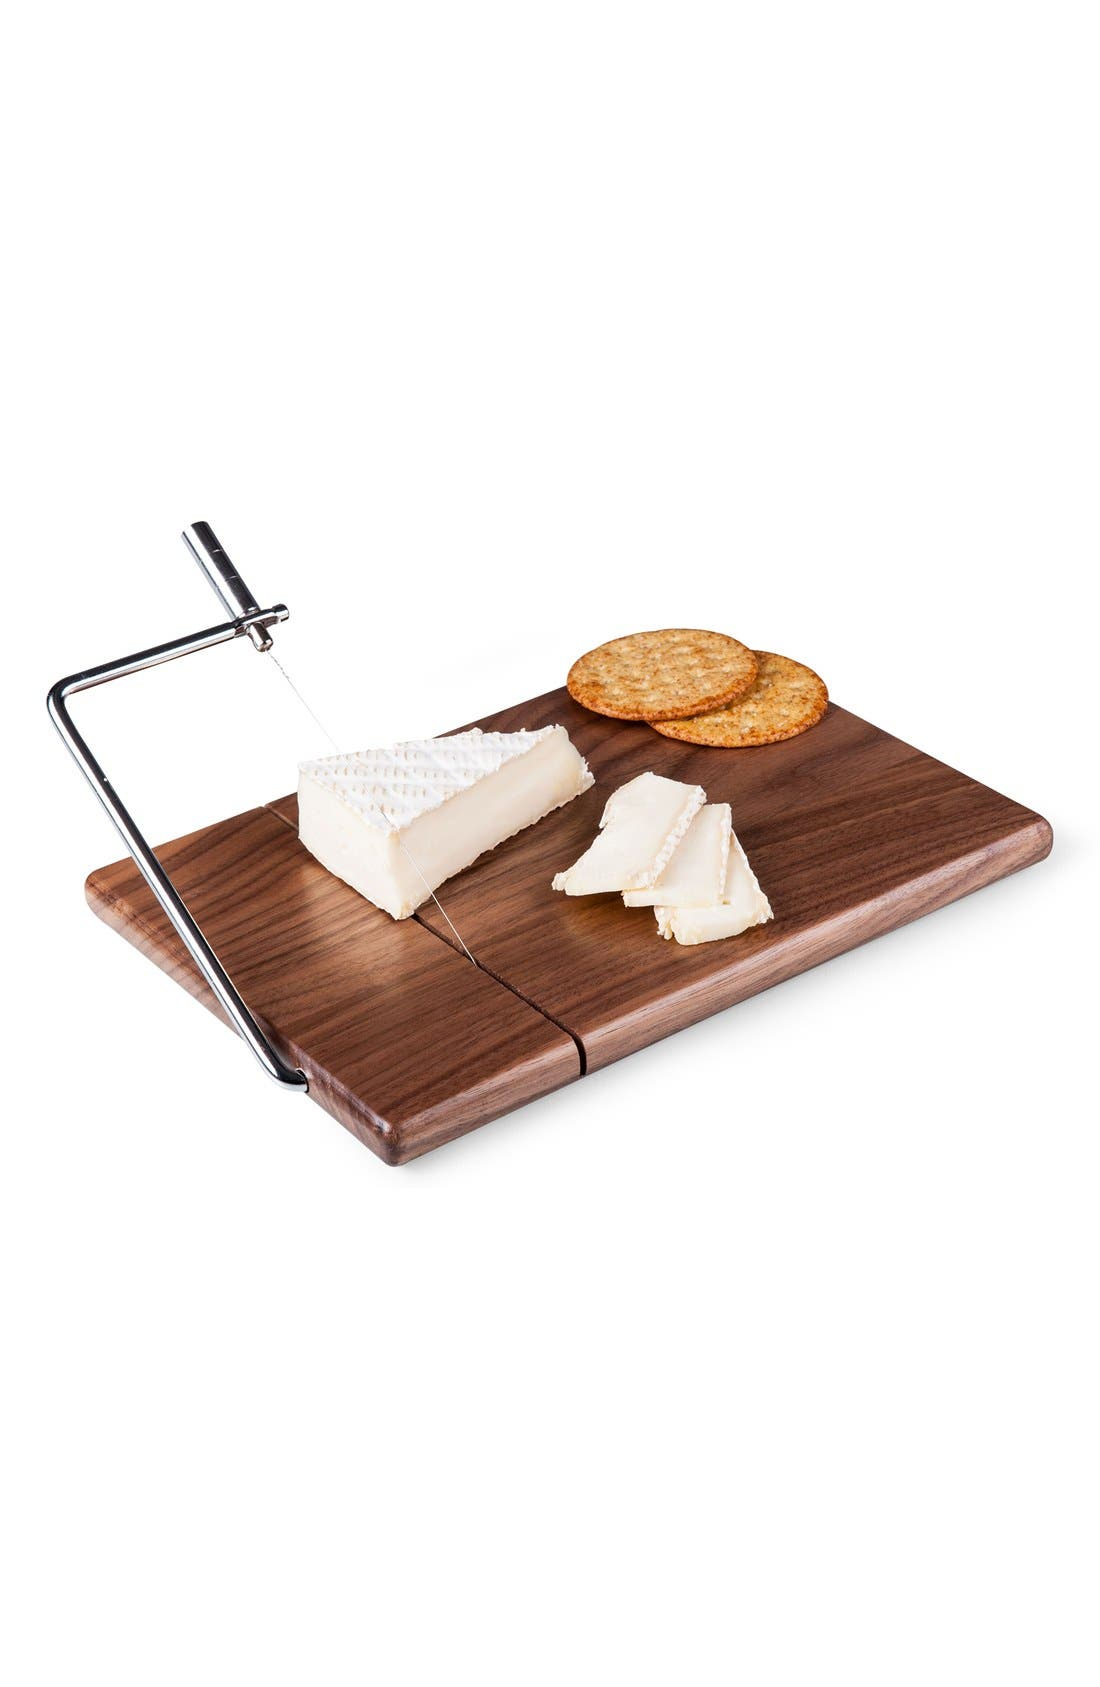 Main Image - Picnic Time 'Meridian' Black Walnut Cutting Board with Slicer